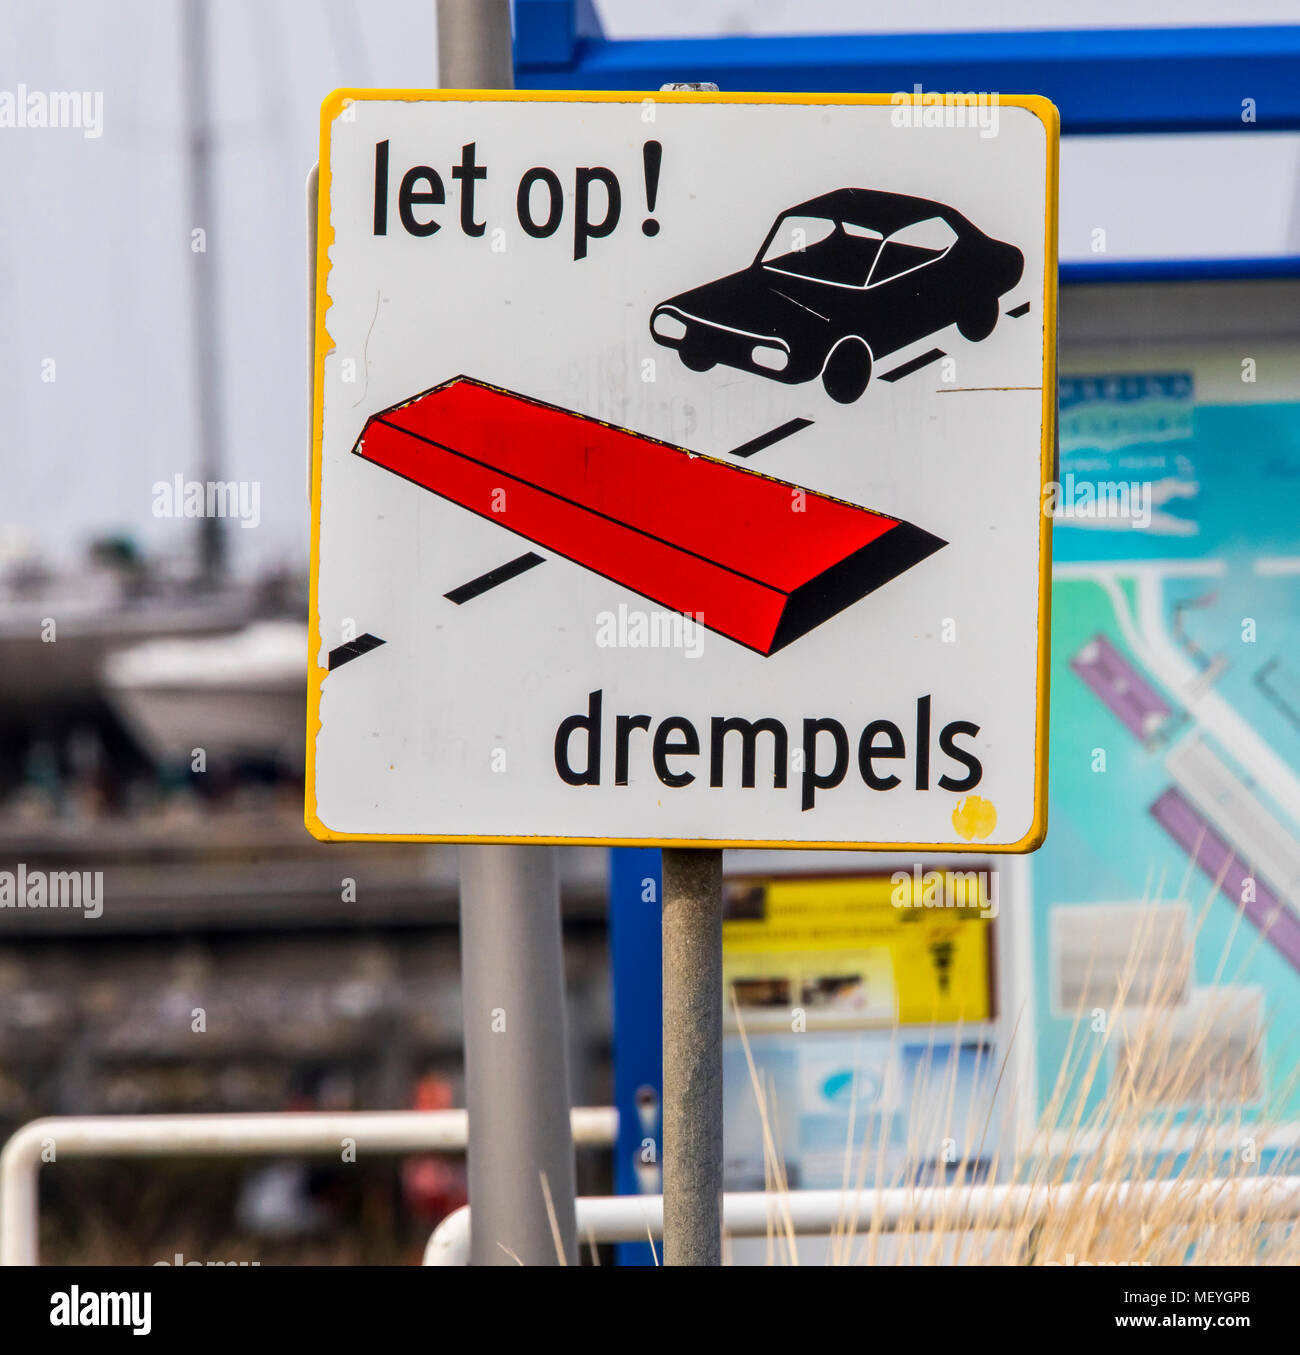 Road sign, reference to bumps, for speed reduction, in Dutch, drums, drempels, - Stock Image